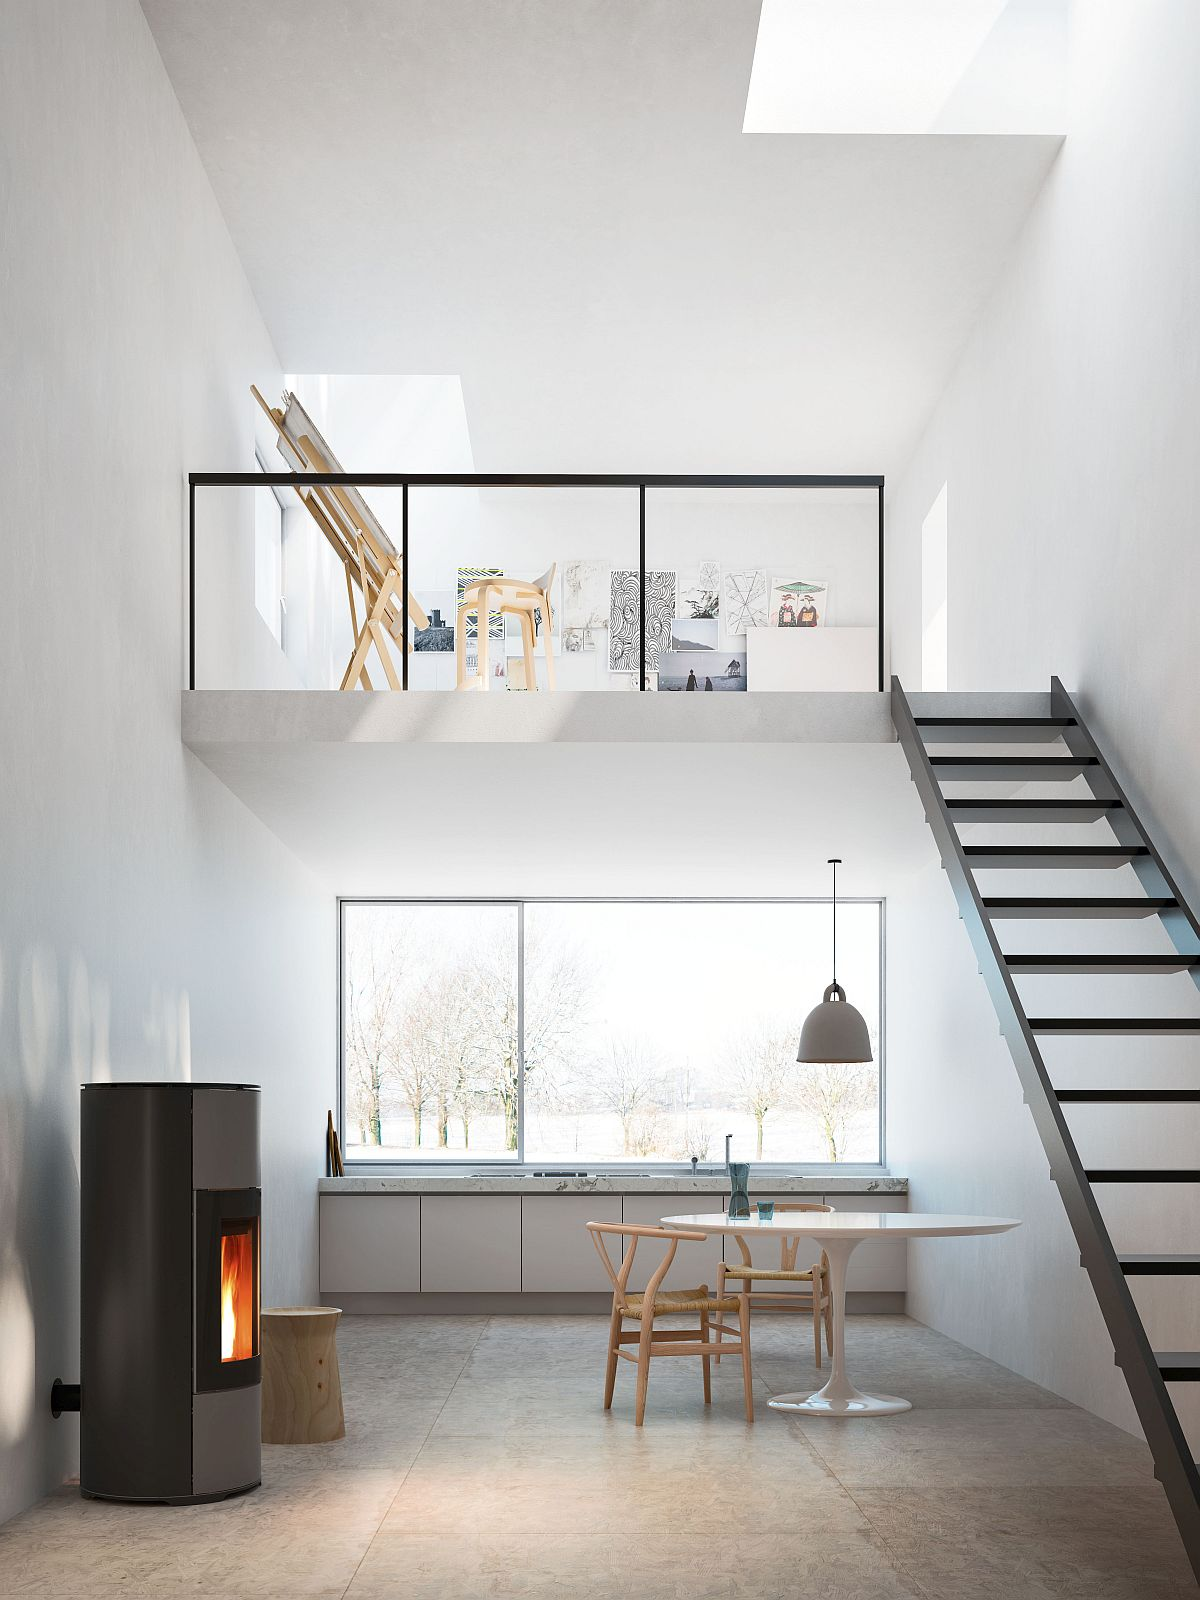 Halo - Forced ventilation pellet stove from MCZ